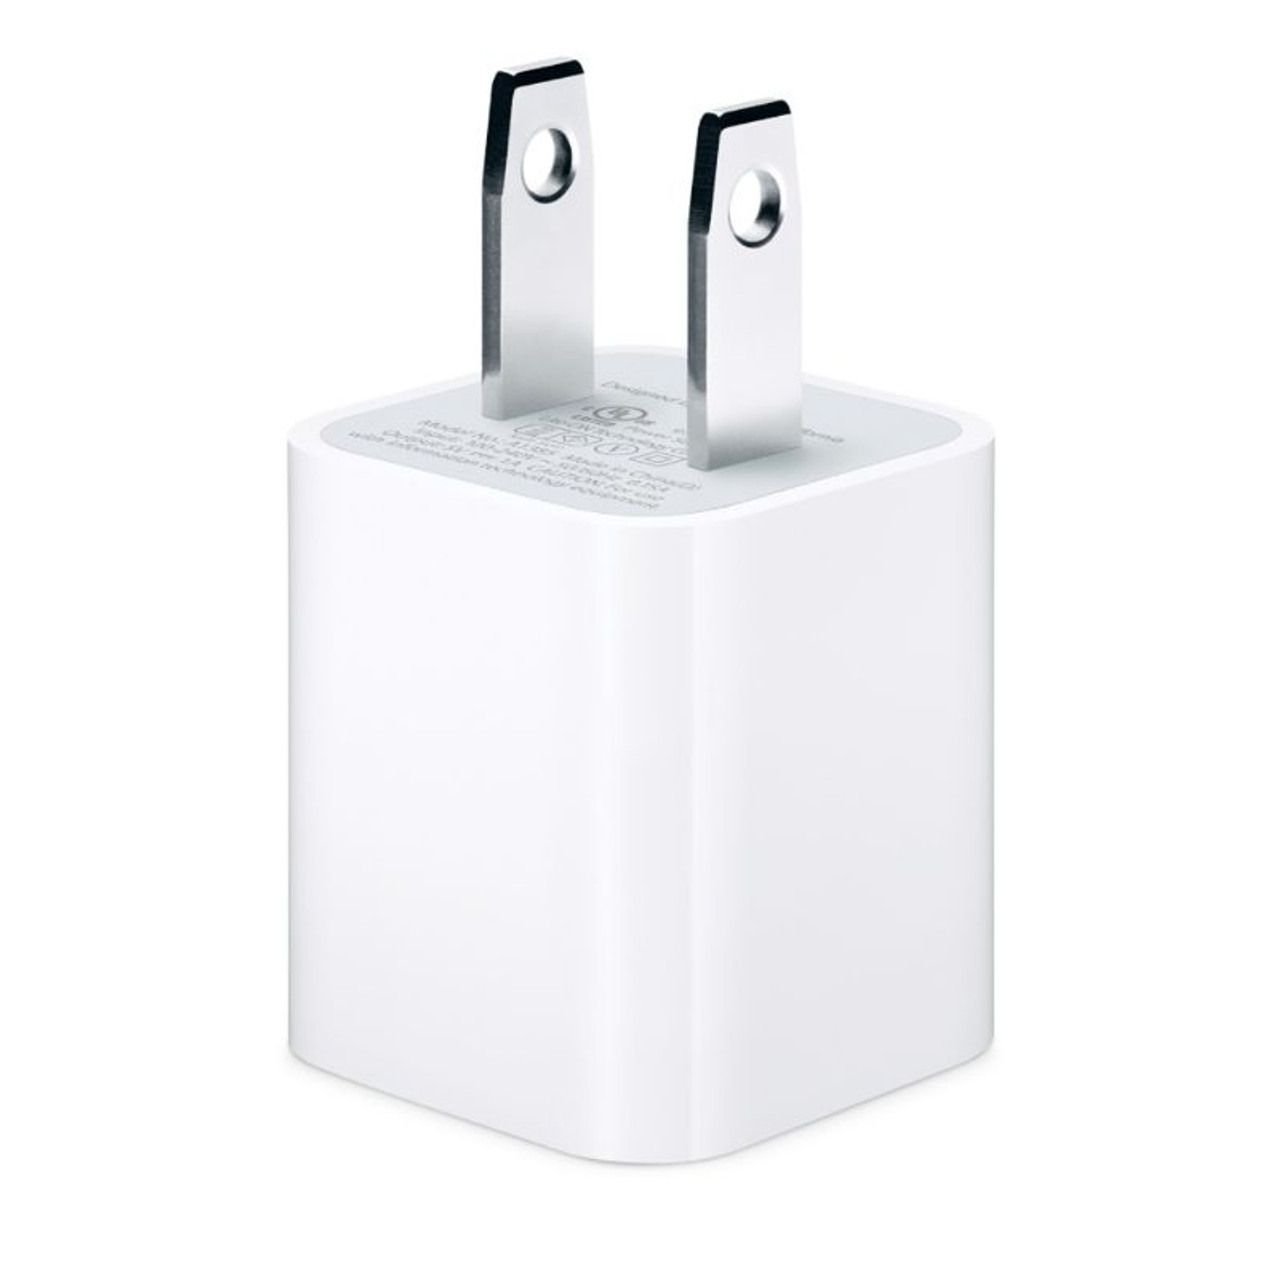 Apple Power Adapter and Lightning Cable Bundle - 1 or 2 Pack